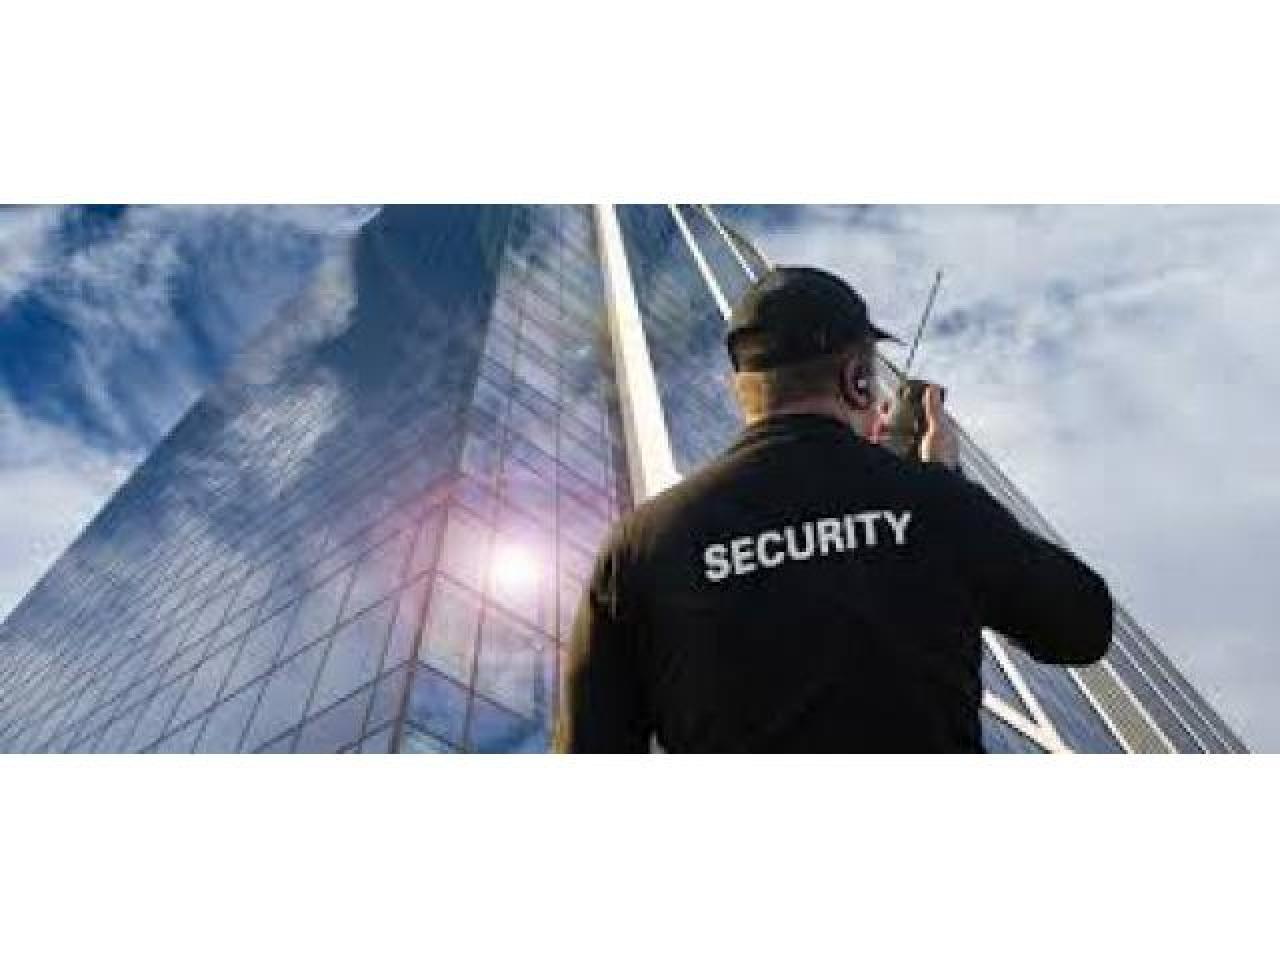 Security officer course & job - 3